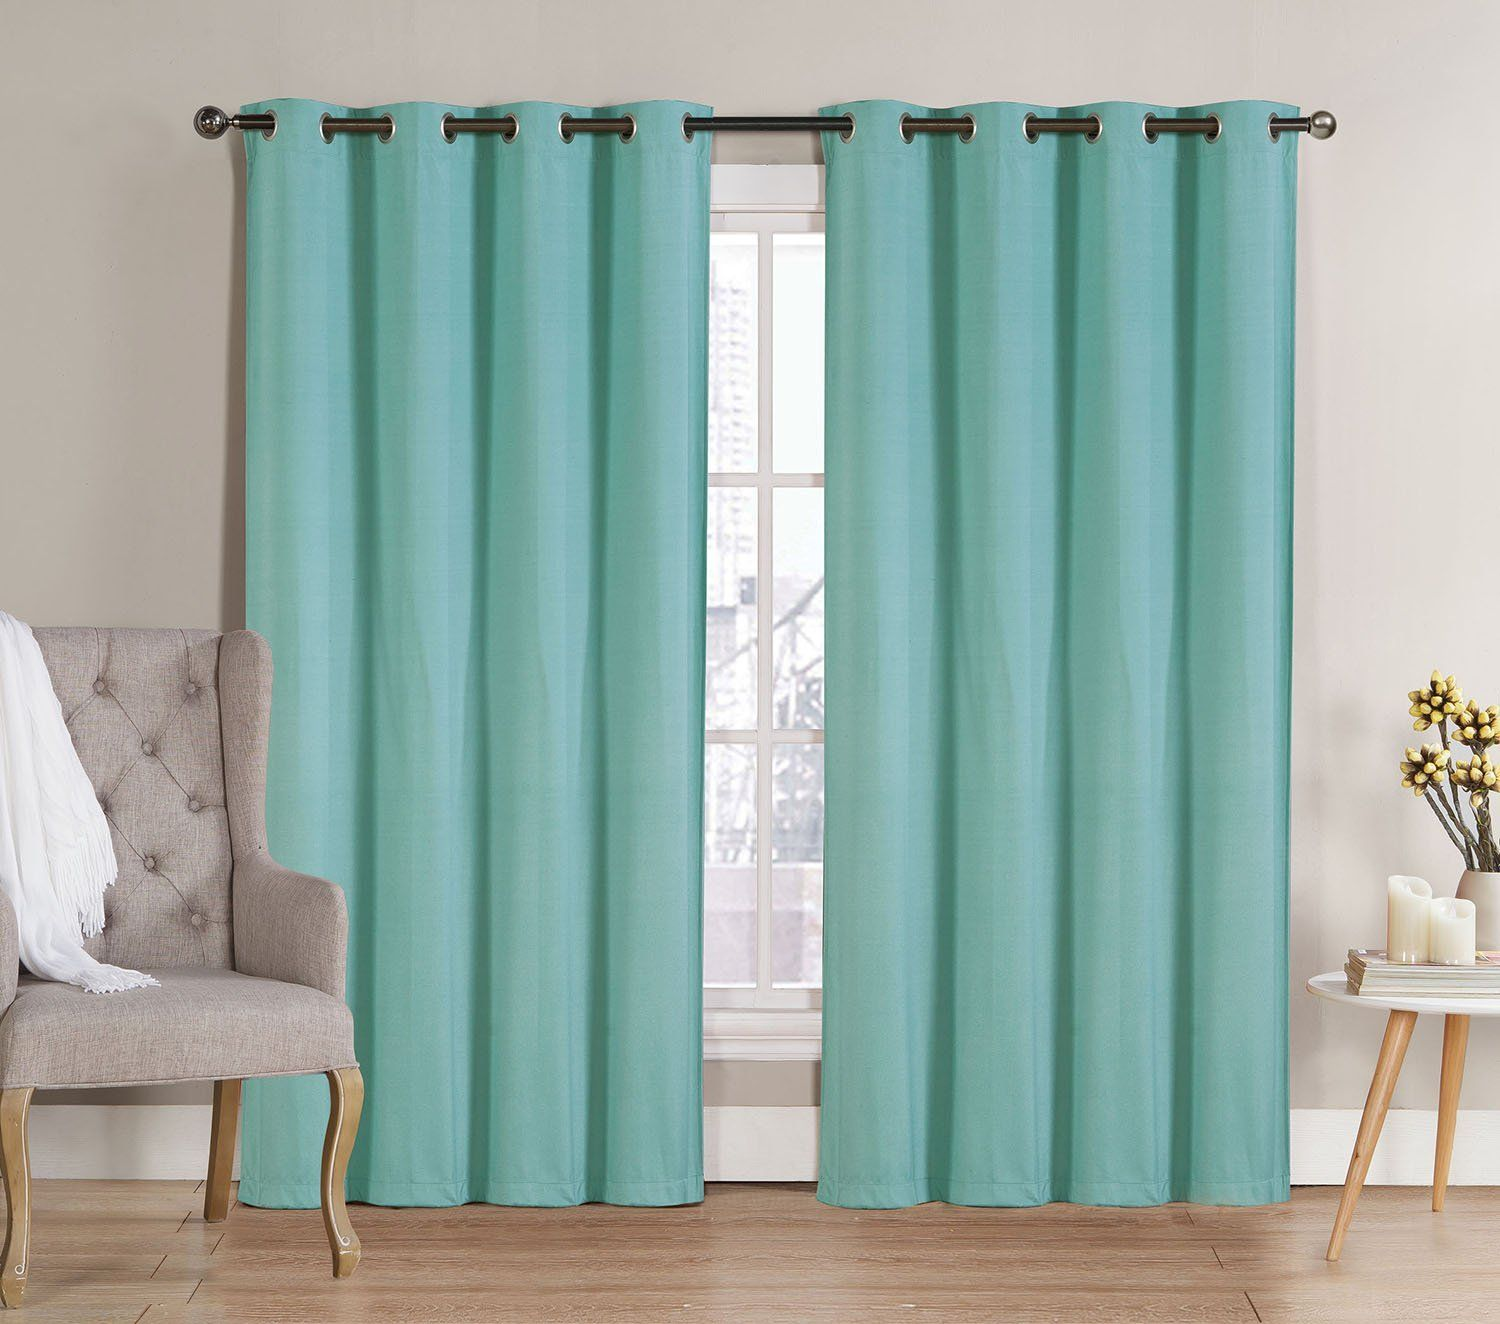 Me Nicole Solid Thermal Insulated Blackout Window Curtain Panels Pair 90 Inch Long Aqua Blue